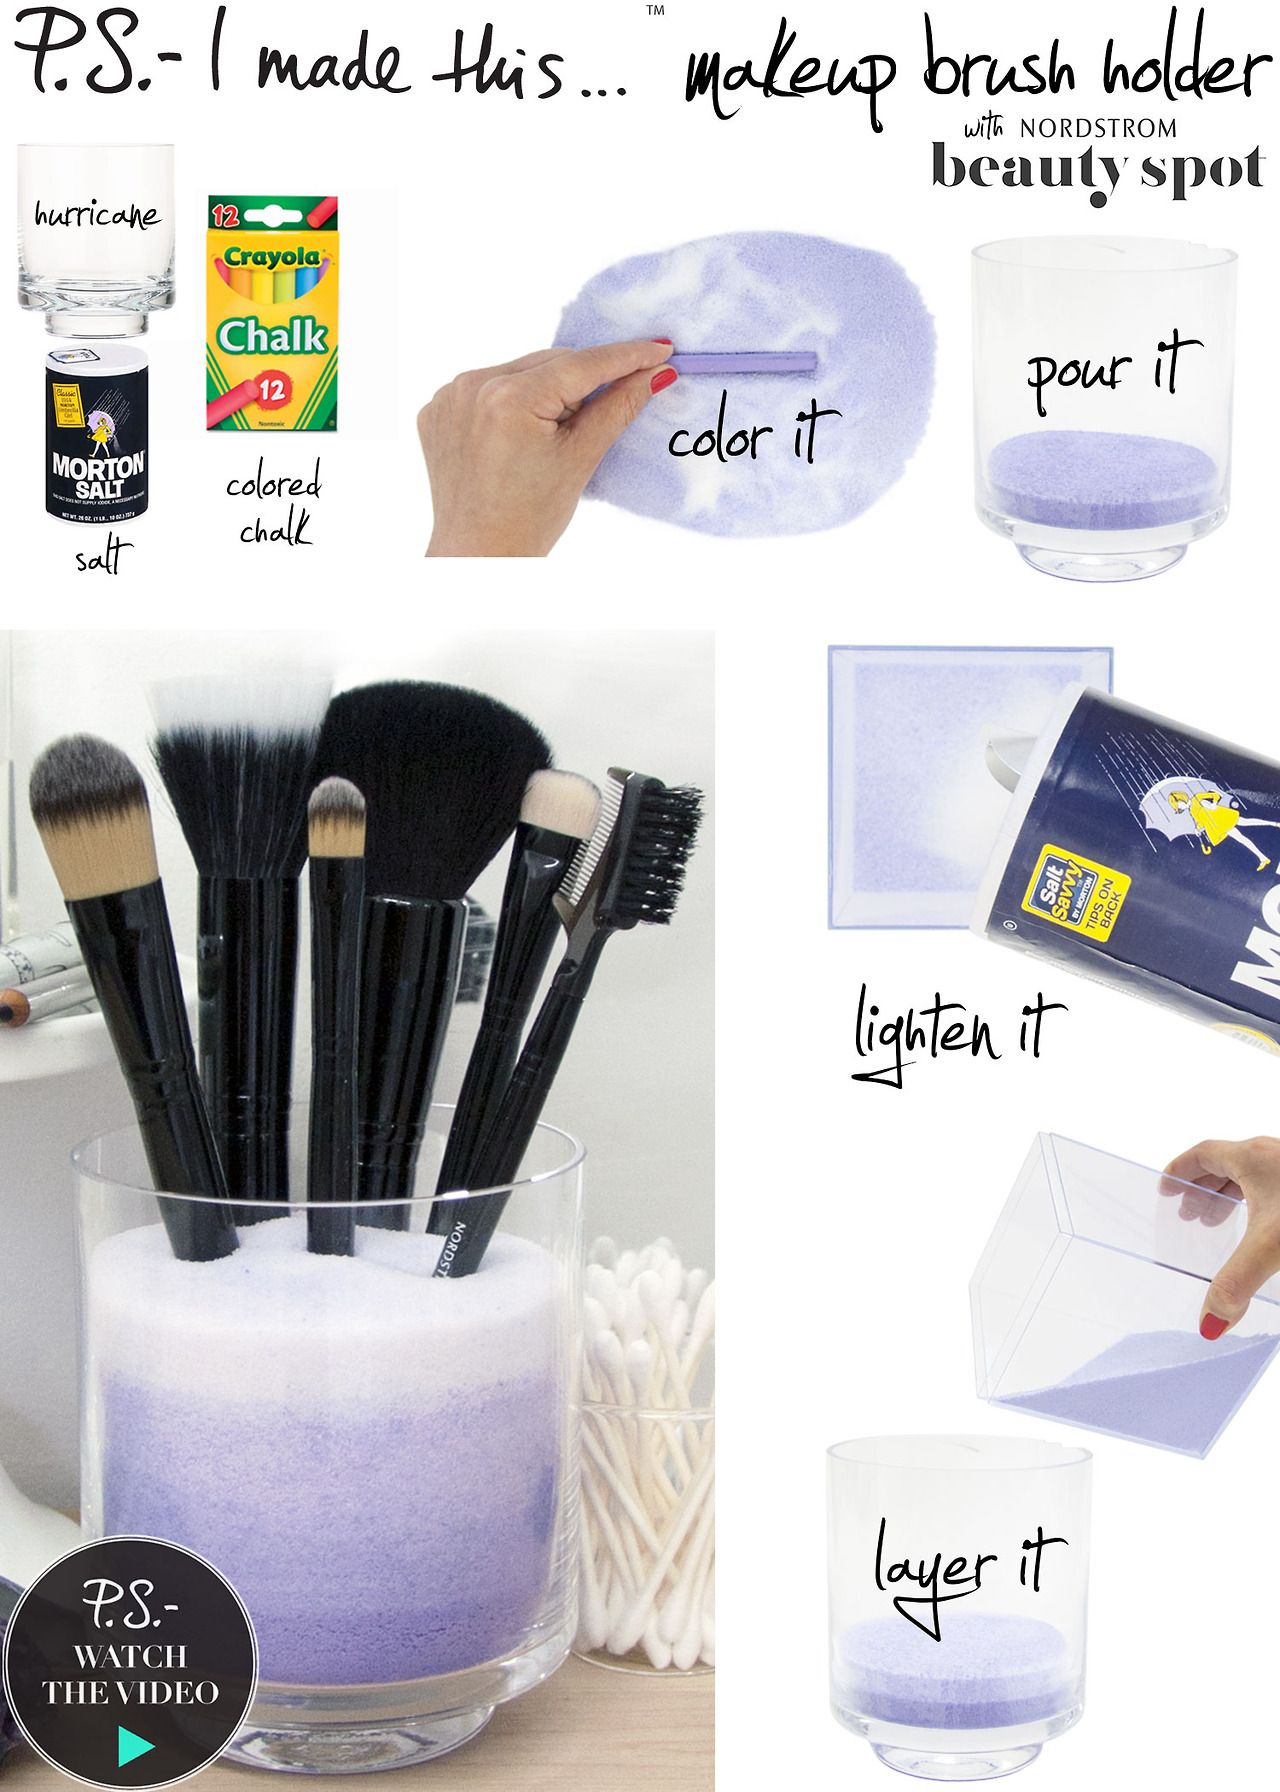 Diy Makeup Brush Holder Makeup Diy Easy Crafts Diy Ideas